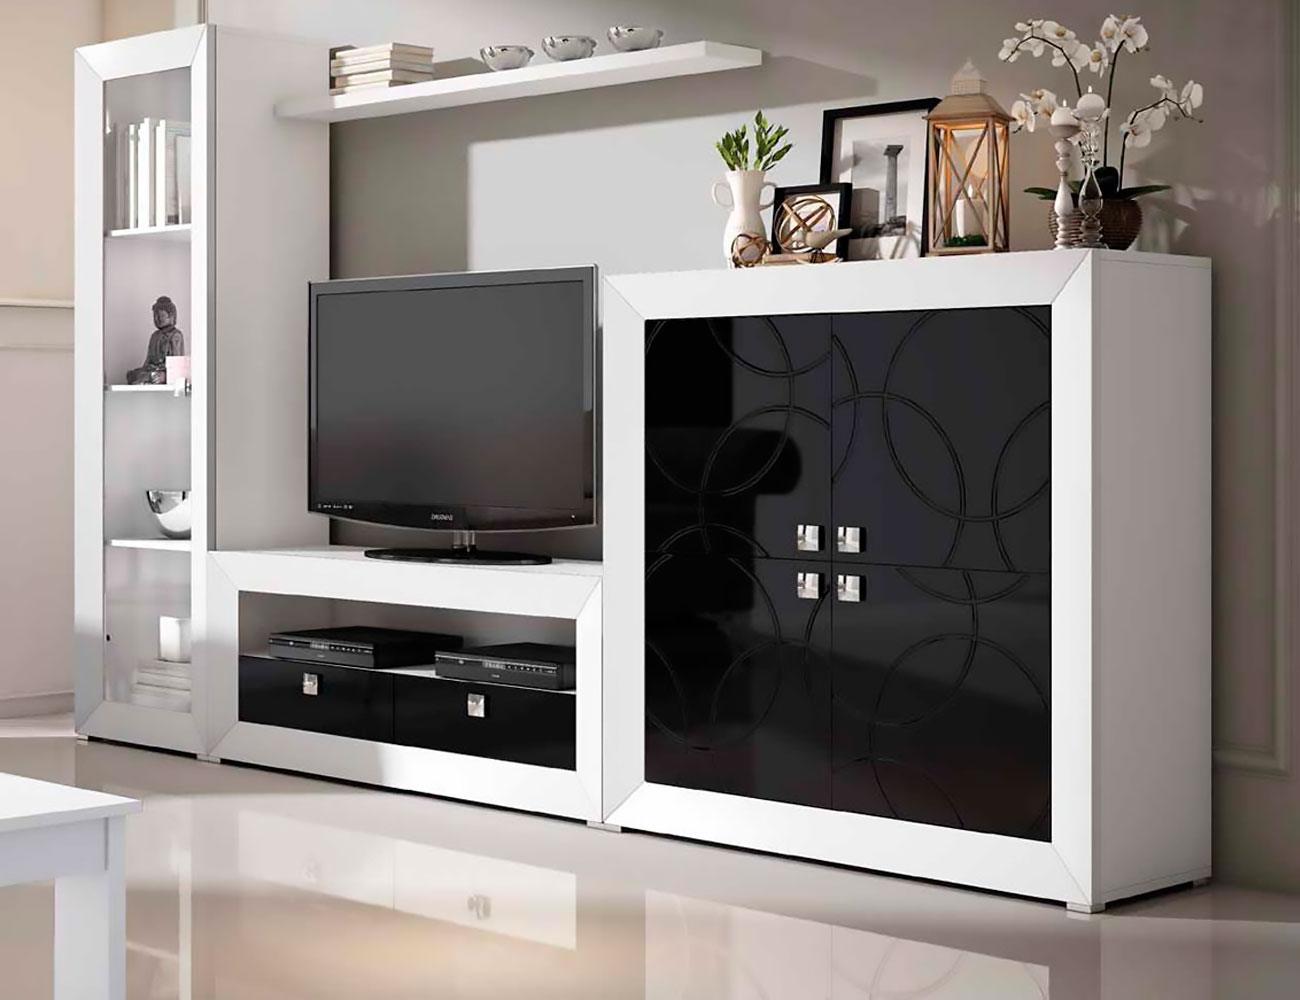 Mueble de sal n modular moderno lacado 2452 factory for Espejos de salon modernos